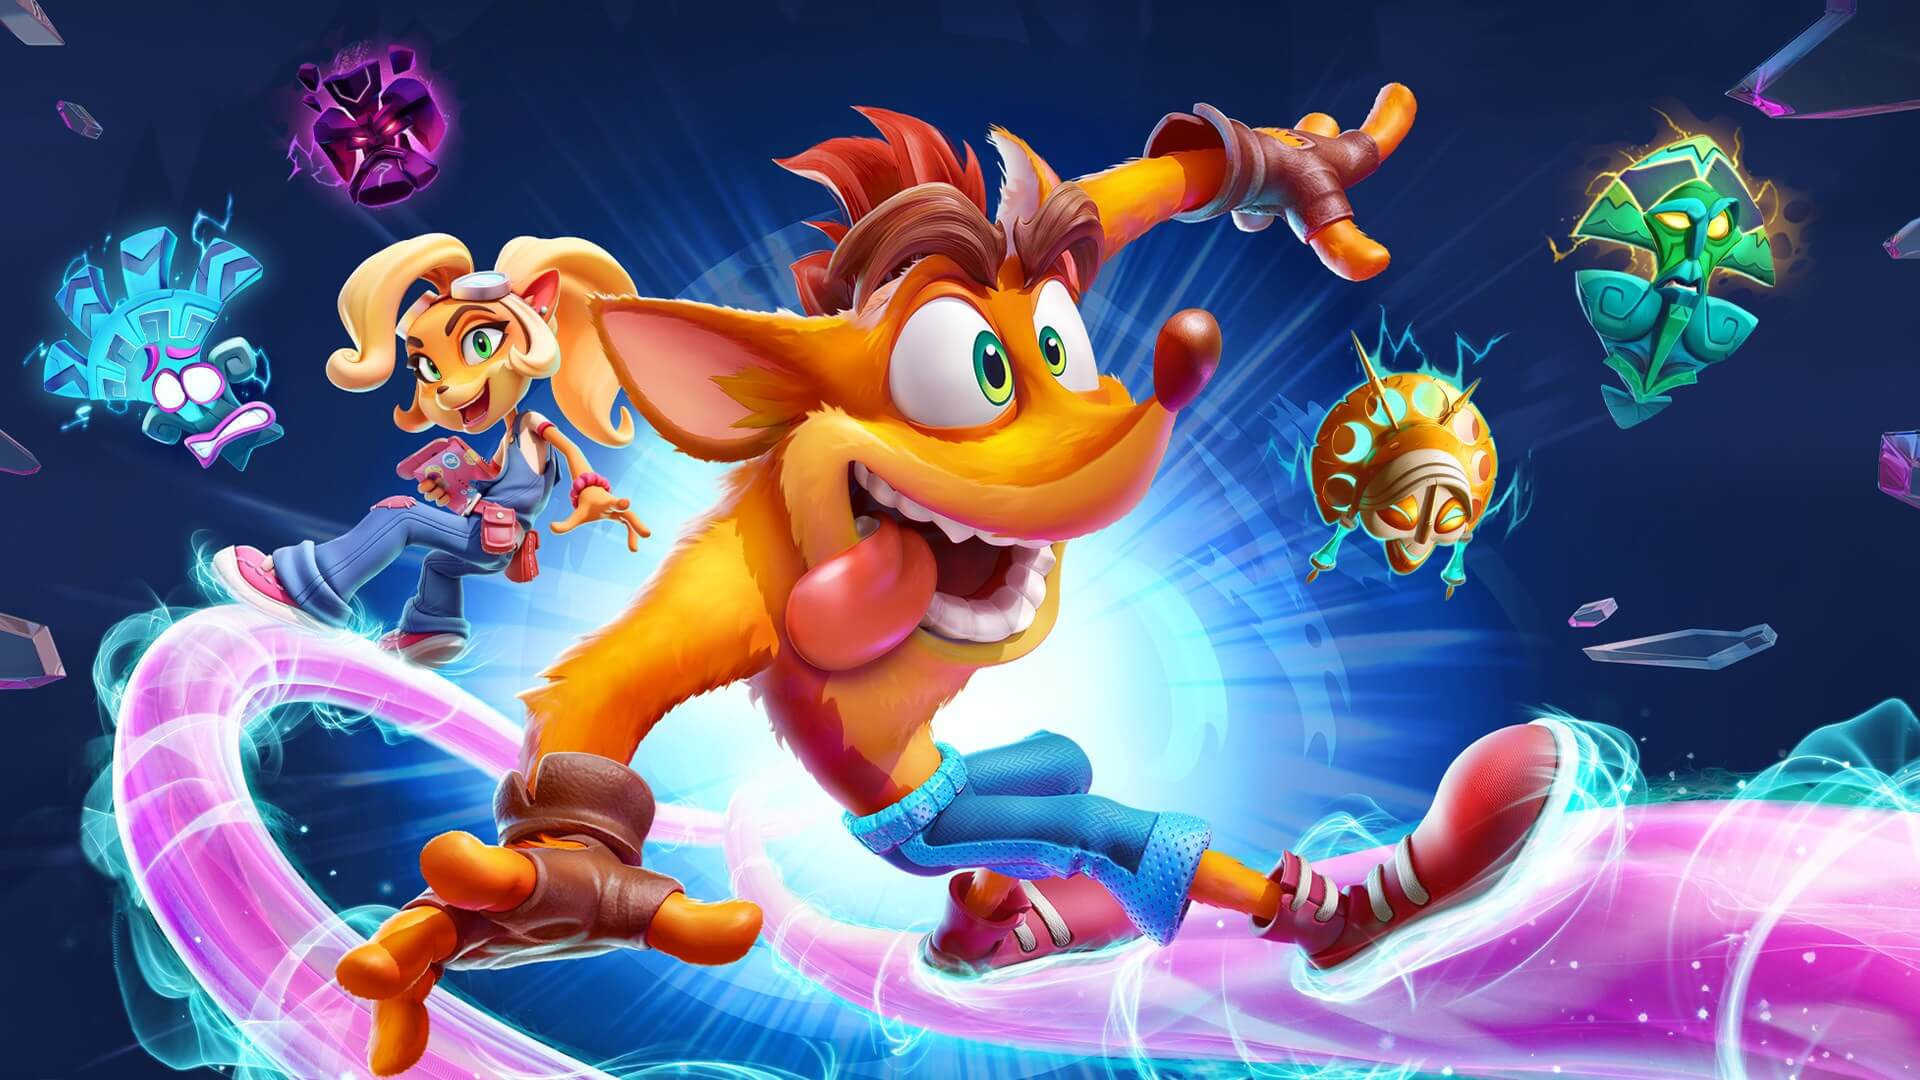 Crash Bandicoot 4: It's About Time | Game terá upgrade para 4K e recursos do DualSense